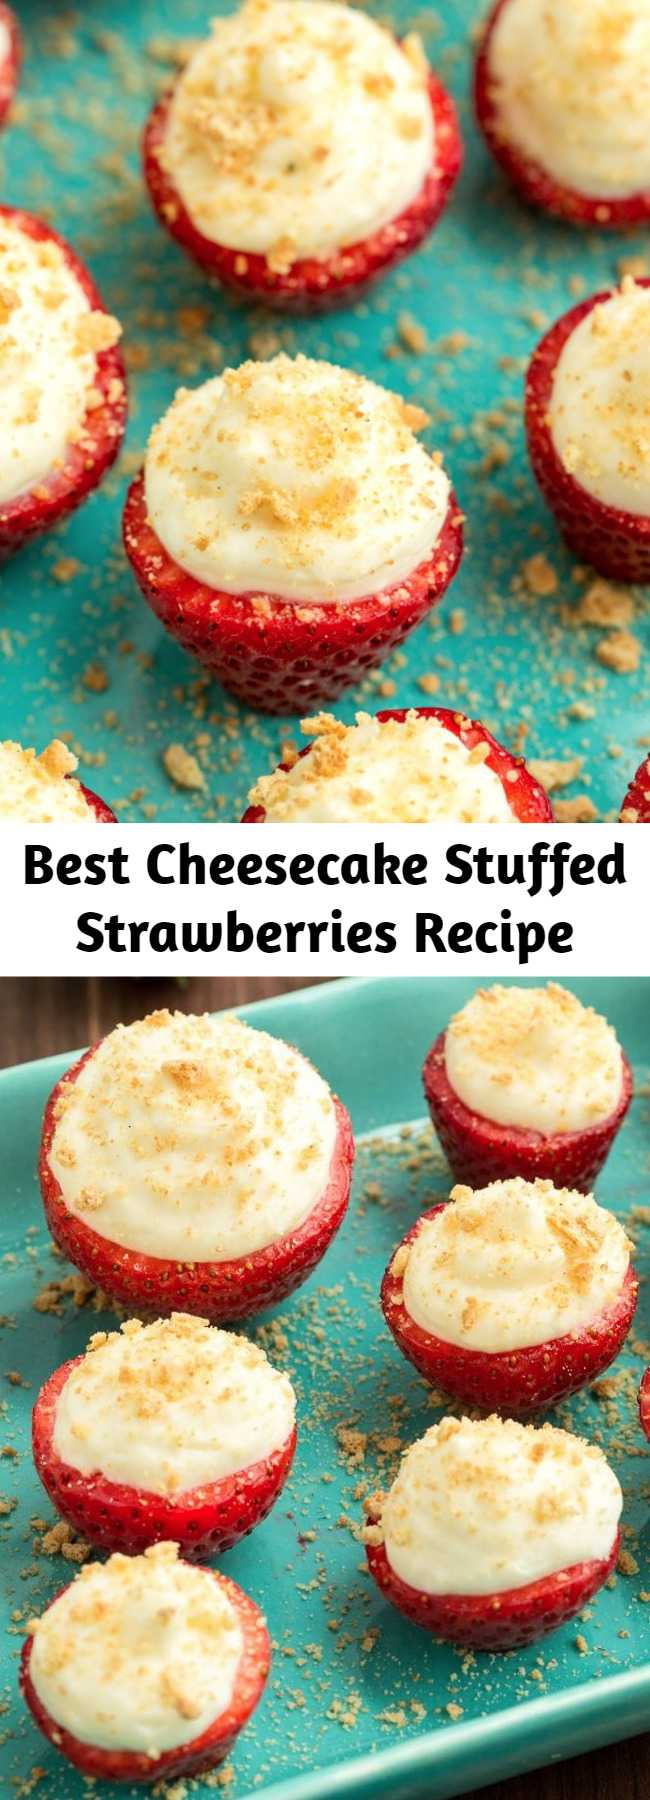 Best Cheesecake Stuffed Strawberries Recipe - Looking for easy dessert ideas? This fun and fruity dessert is the perfect no-bake treat.